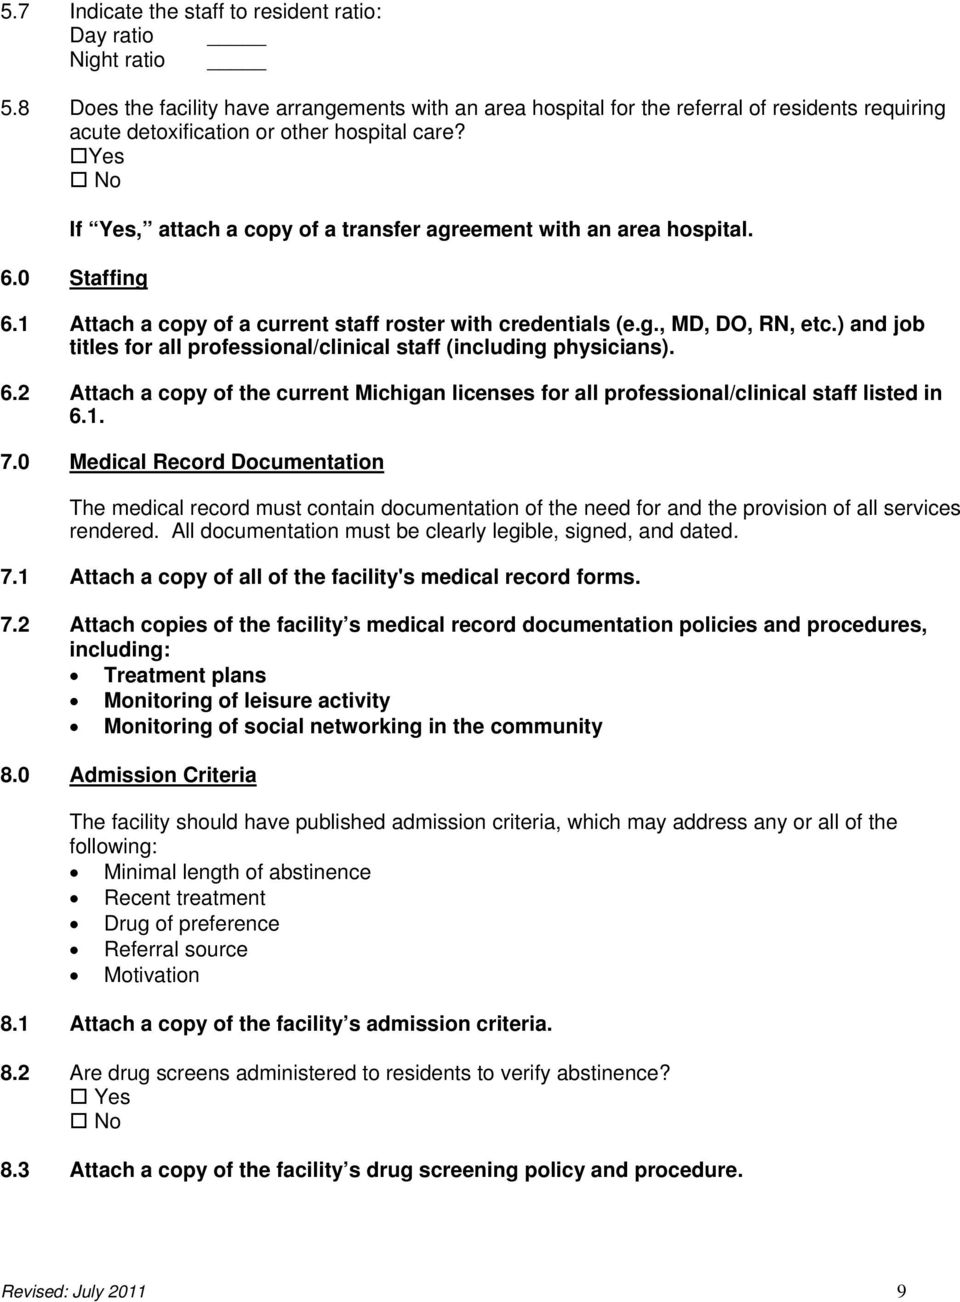 Yes No If Yes, attach a copy of a transfer agreement with an area hospital. 6.0 Staffing 6.1 Attach a copy of a current staff roster with credentials (e.g., MD, DO, RN, etc.